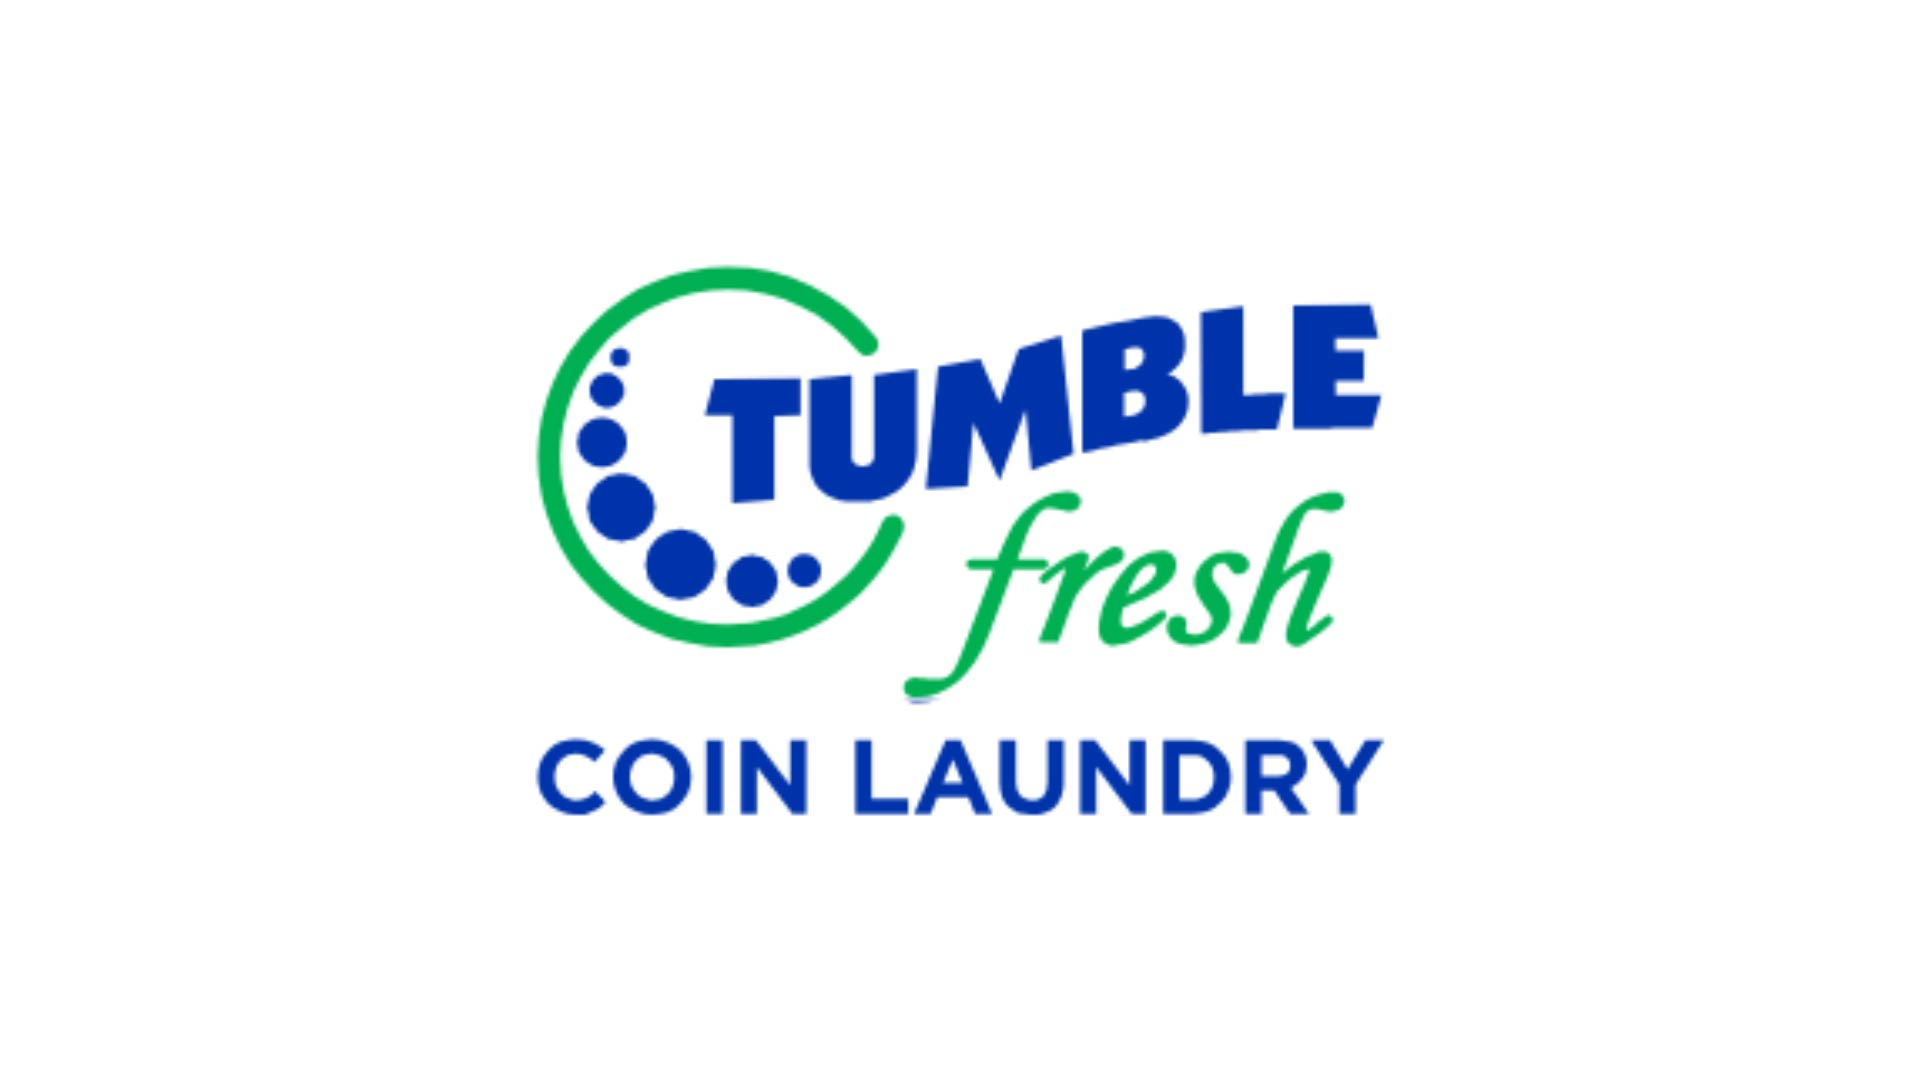 Tumble Fresh Coin Laundry